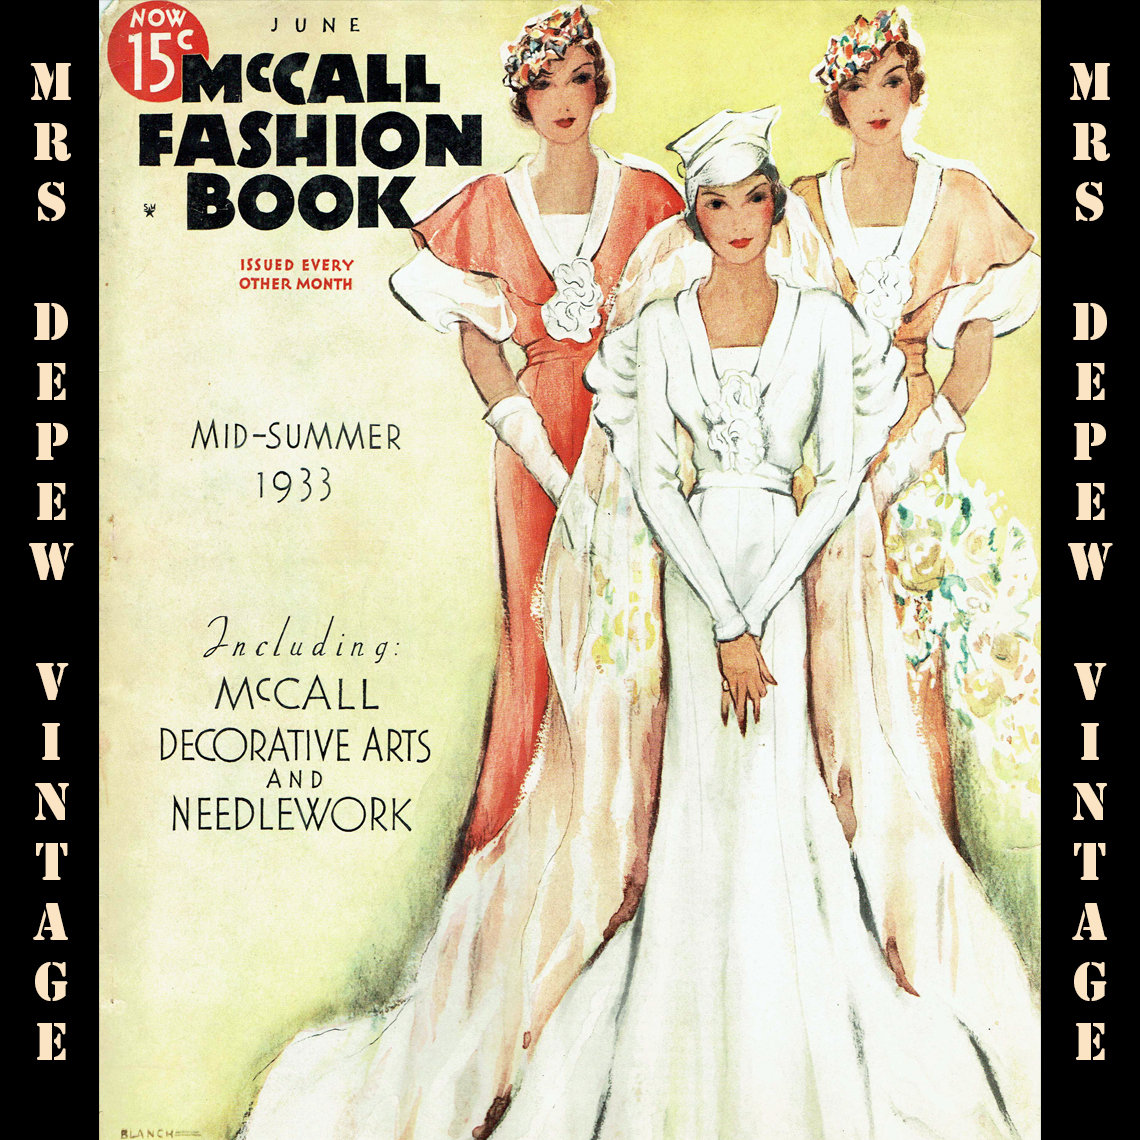 McCall Fashion Book Mid-Summer 1933